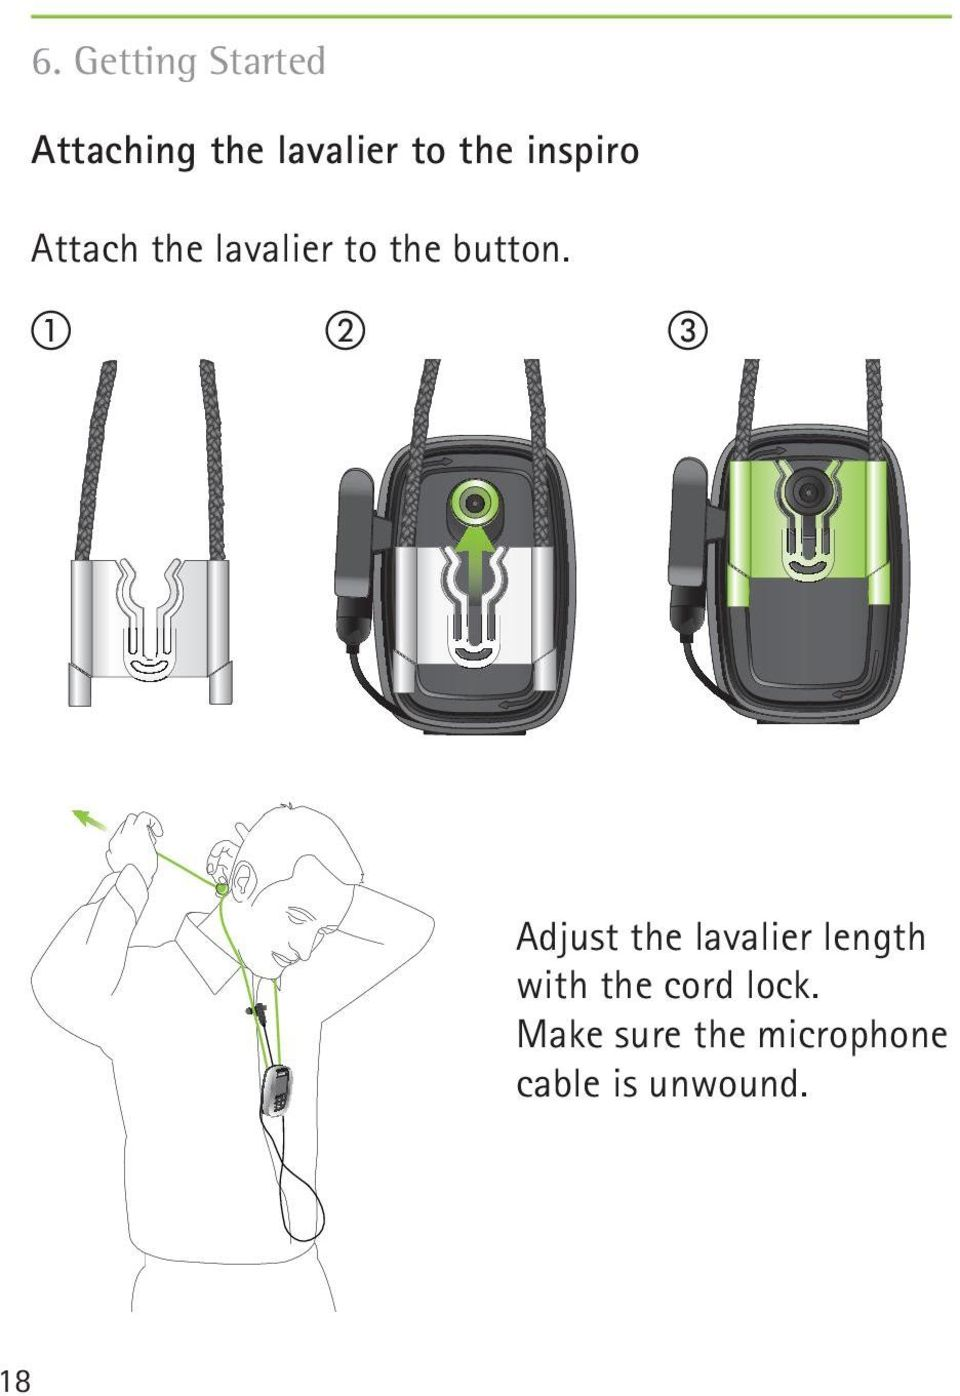 Adjust the lavalier length with the cord lock.